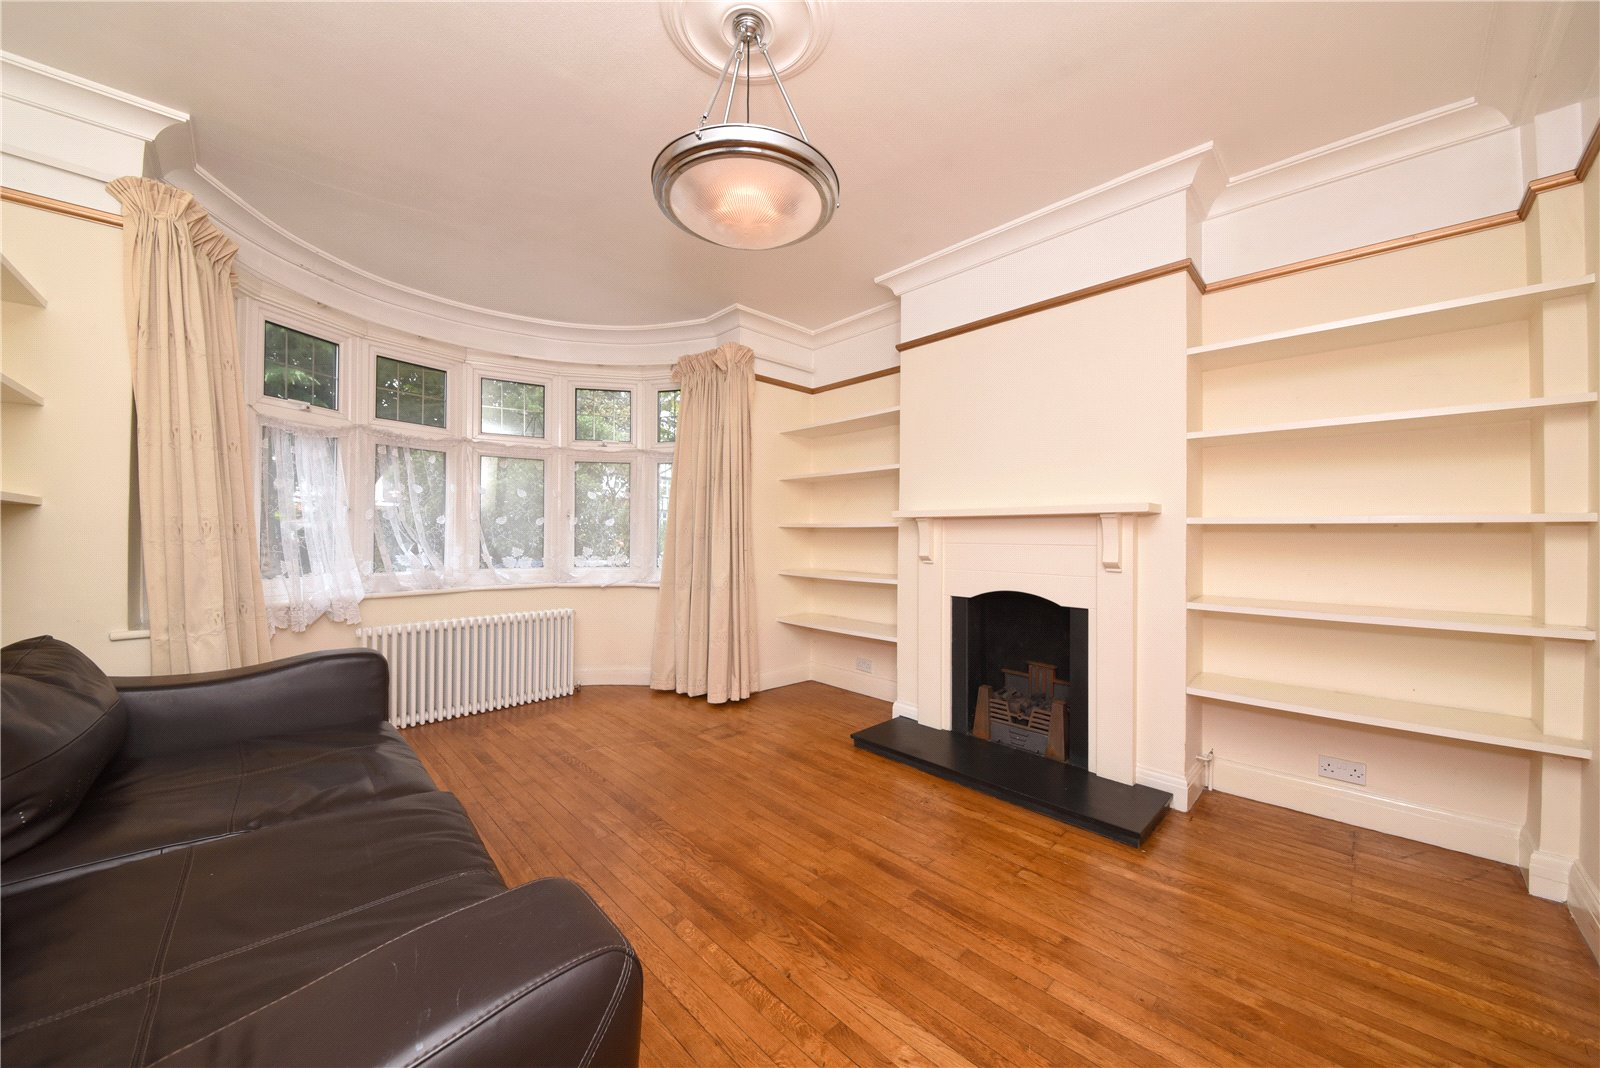 4 bed house to rent in Longland Drive, Totteridge  - Property Image 3